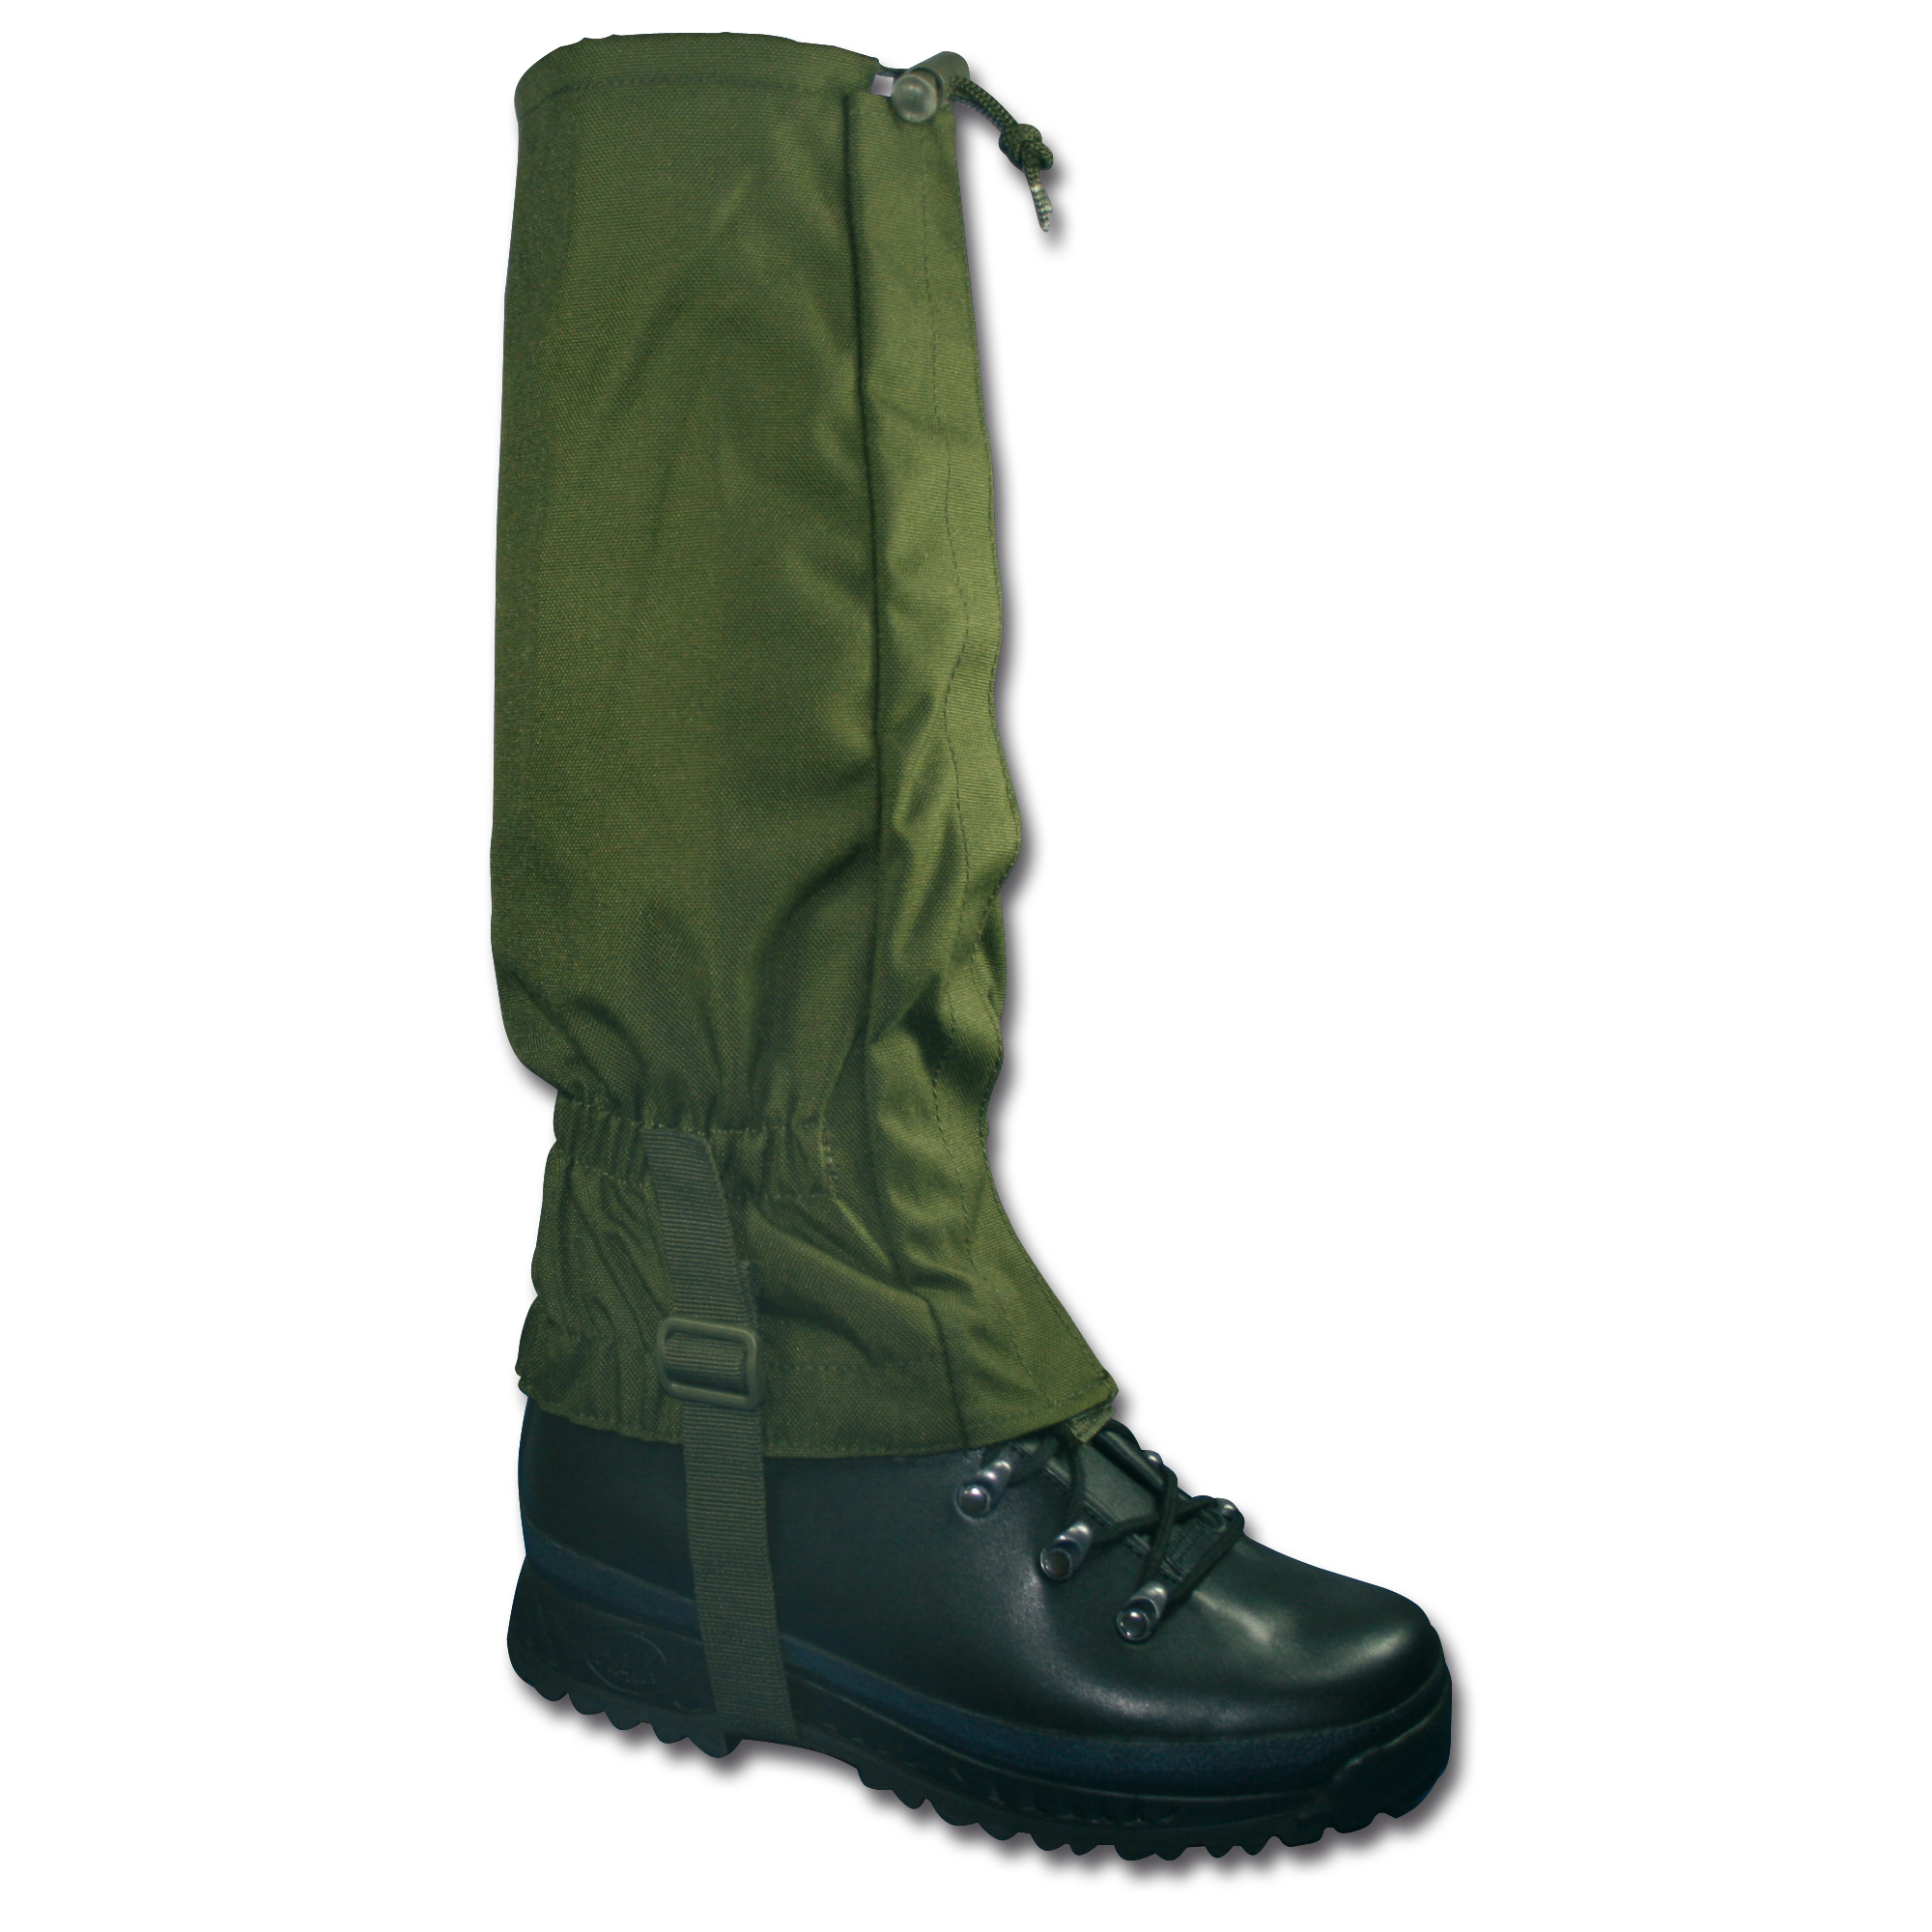 Gaiters TacGear olive green